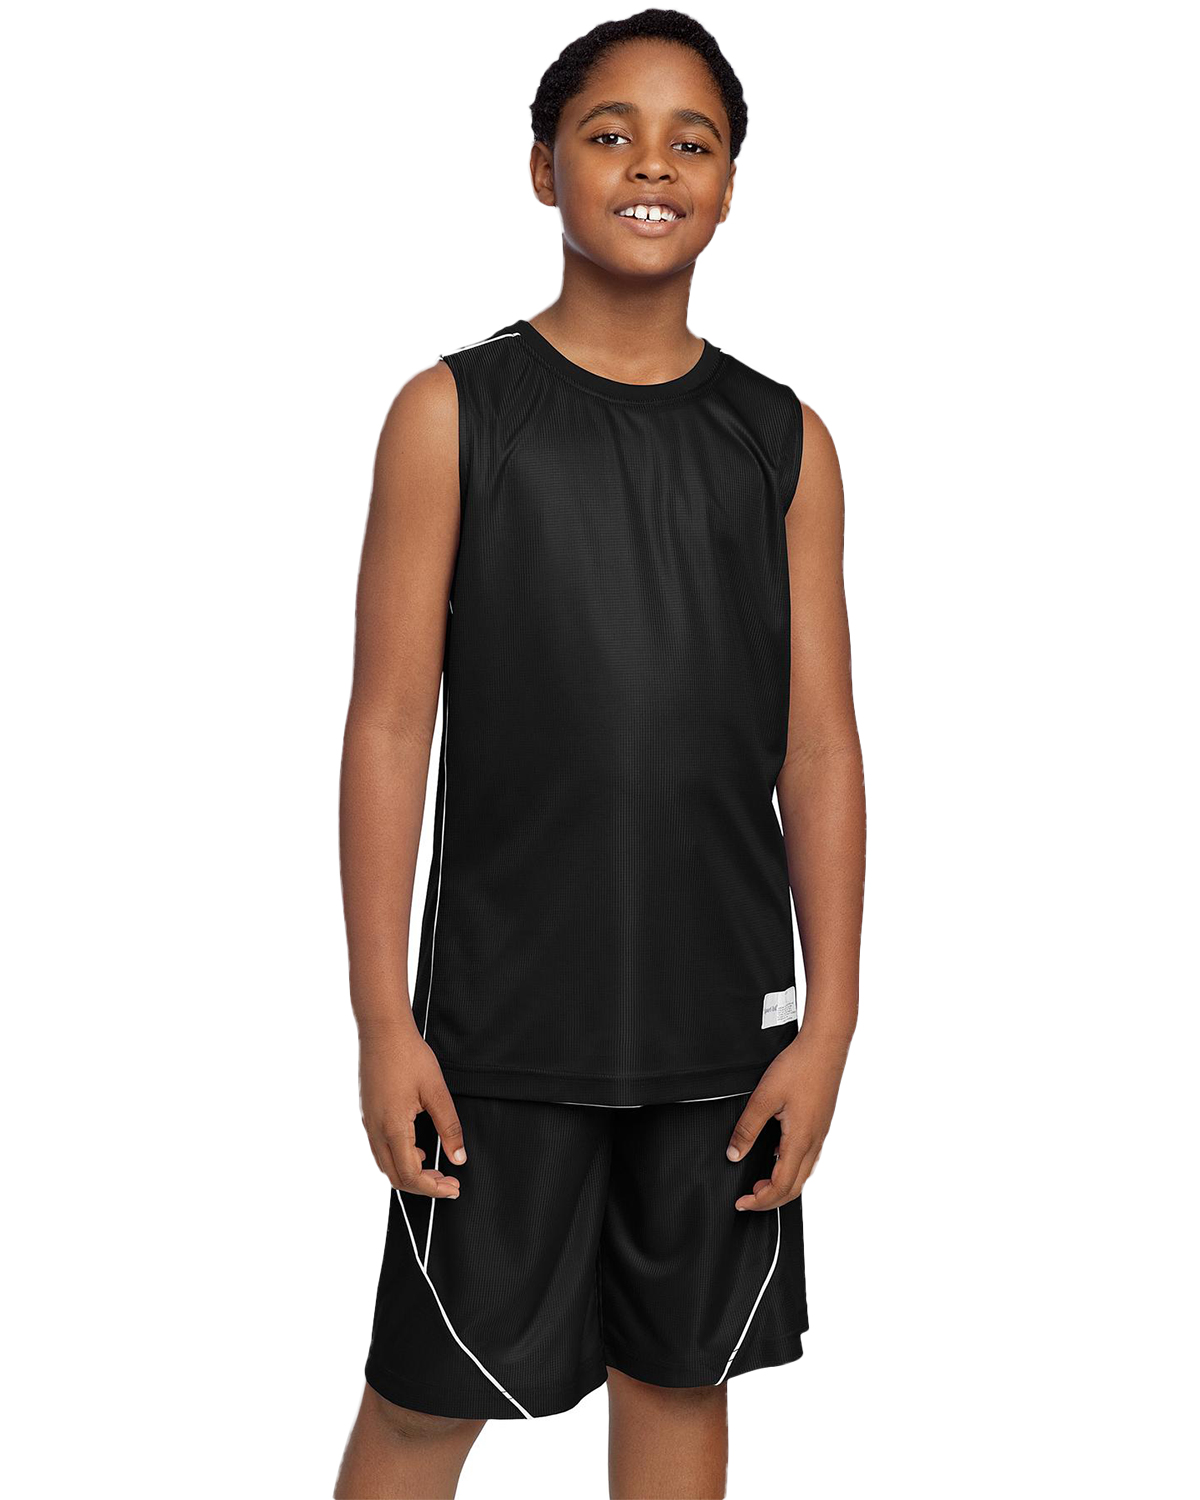 Sport-Tek YT555 Boys PosiCharge™ Mesh Reversible Sleeveless Tee at GotApparel